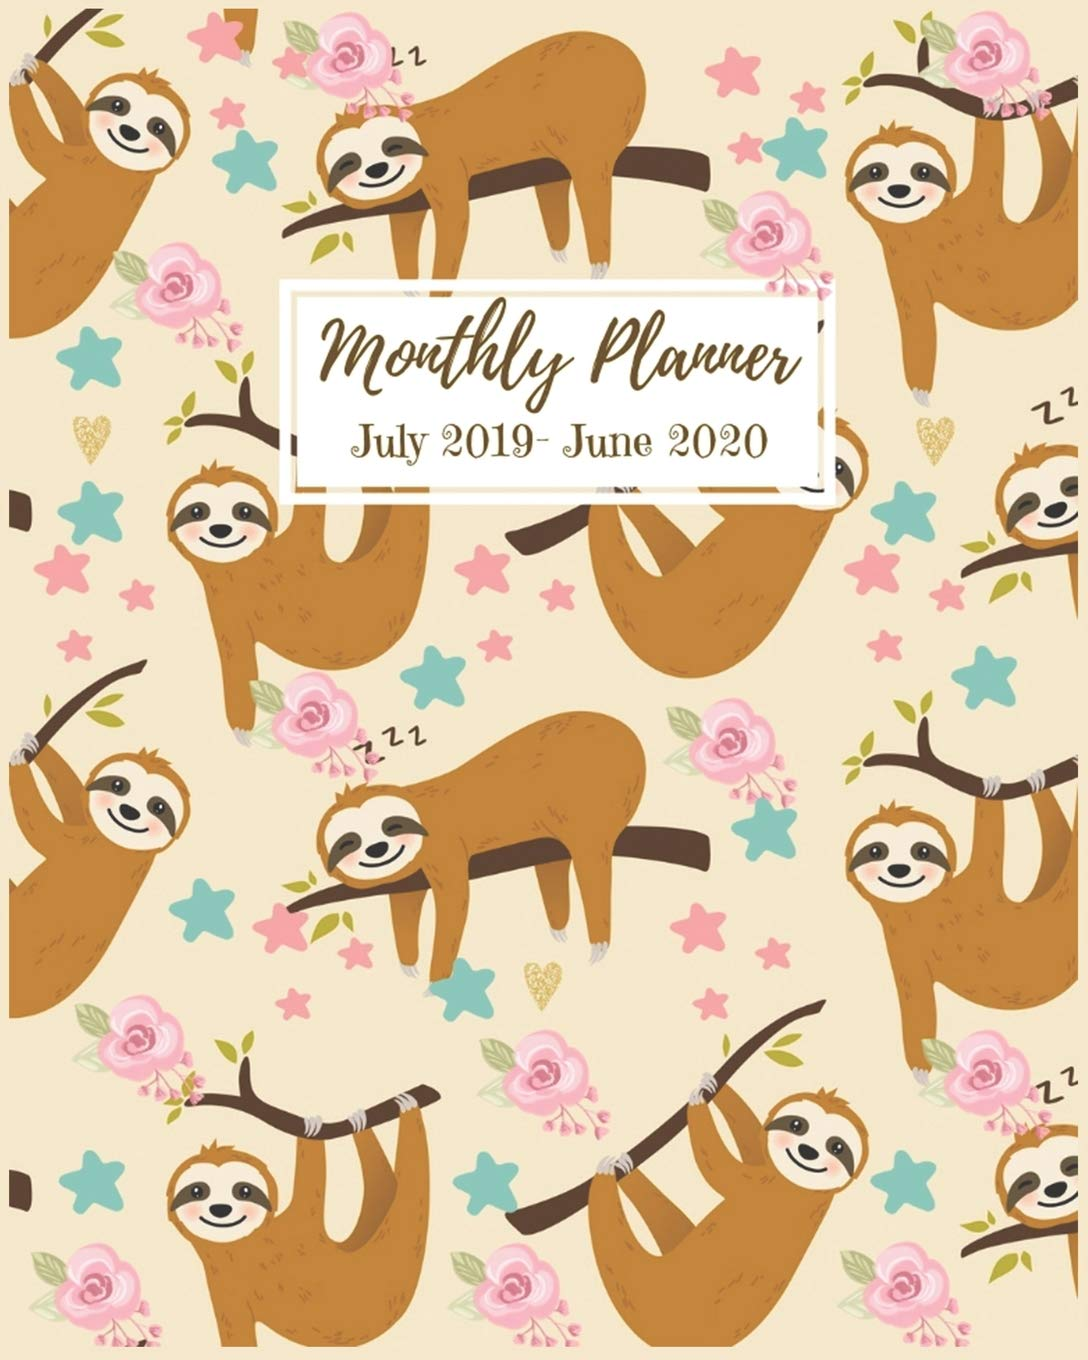 Amazon.com: Monthly Planner: Cute Sloths Panners | 2019 ...